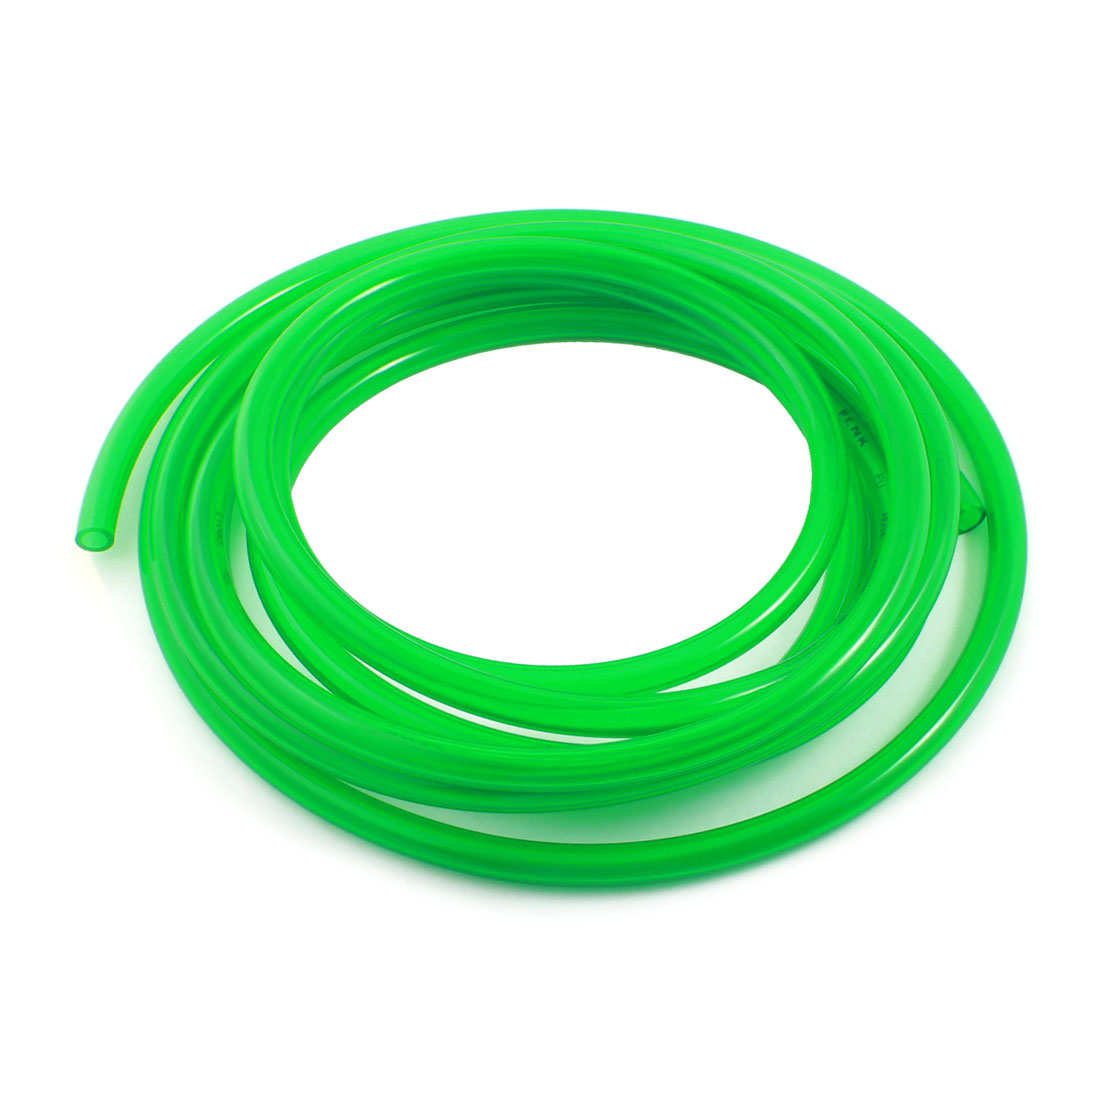 Engine Gas Fuel Oil Injection PU Line Tubing Tube 8mmx12mm 5Meter Clear Green